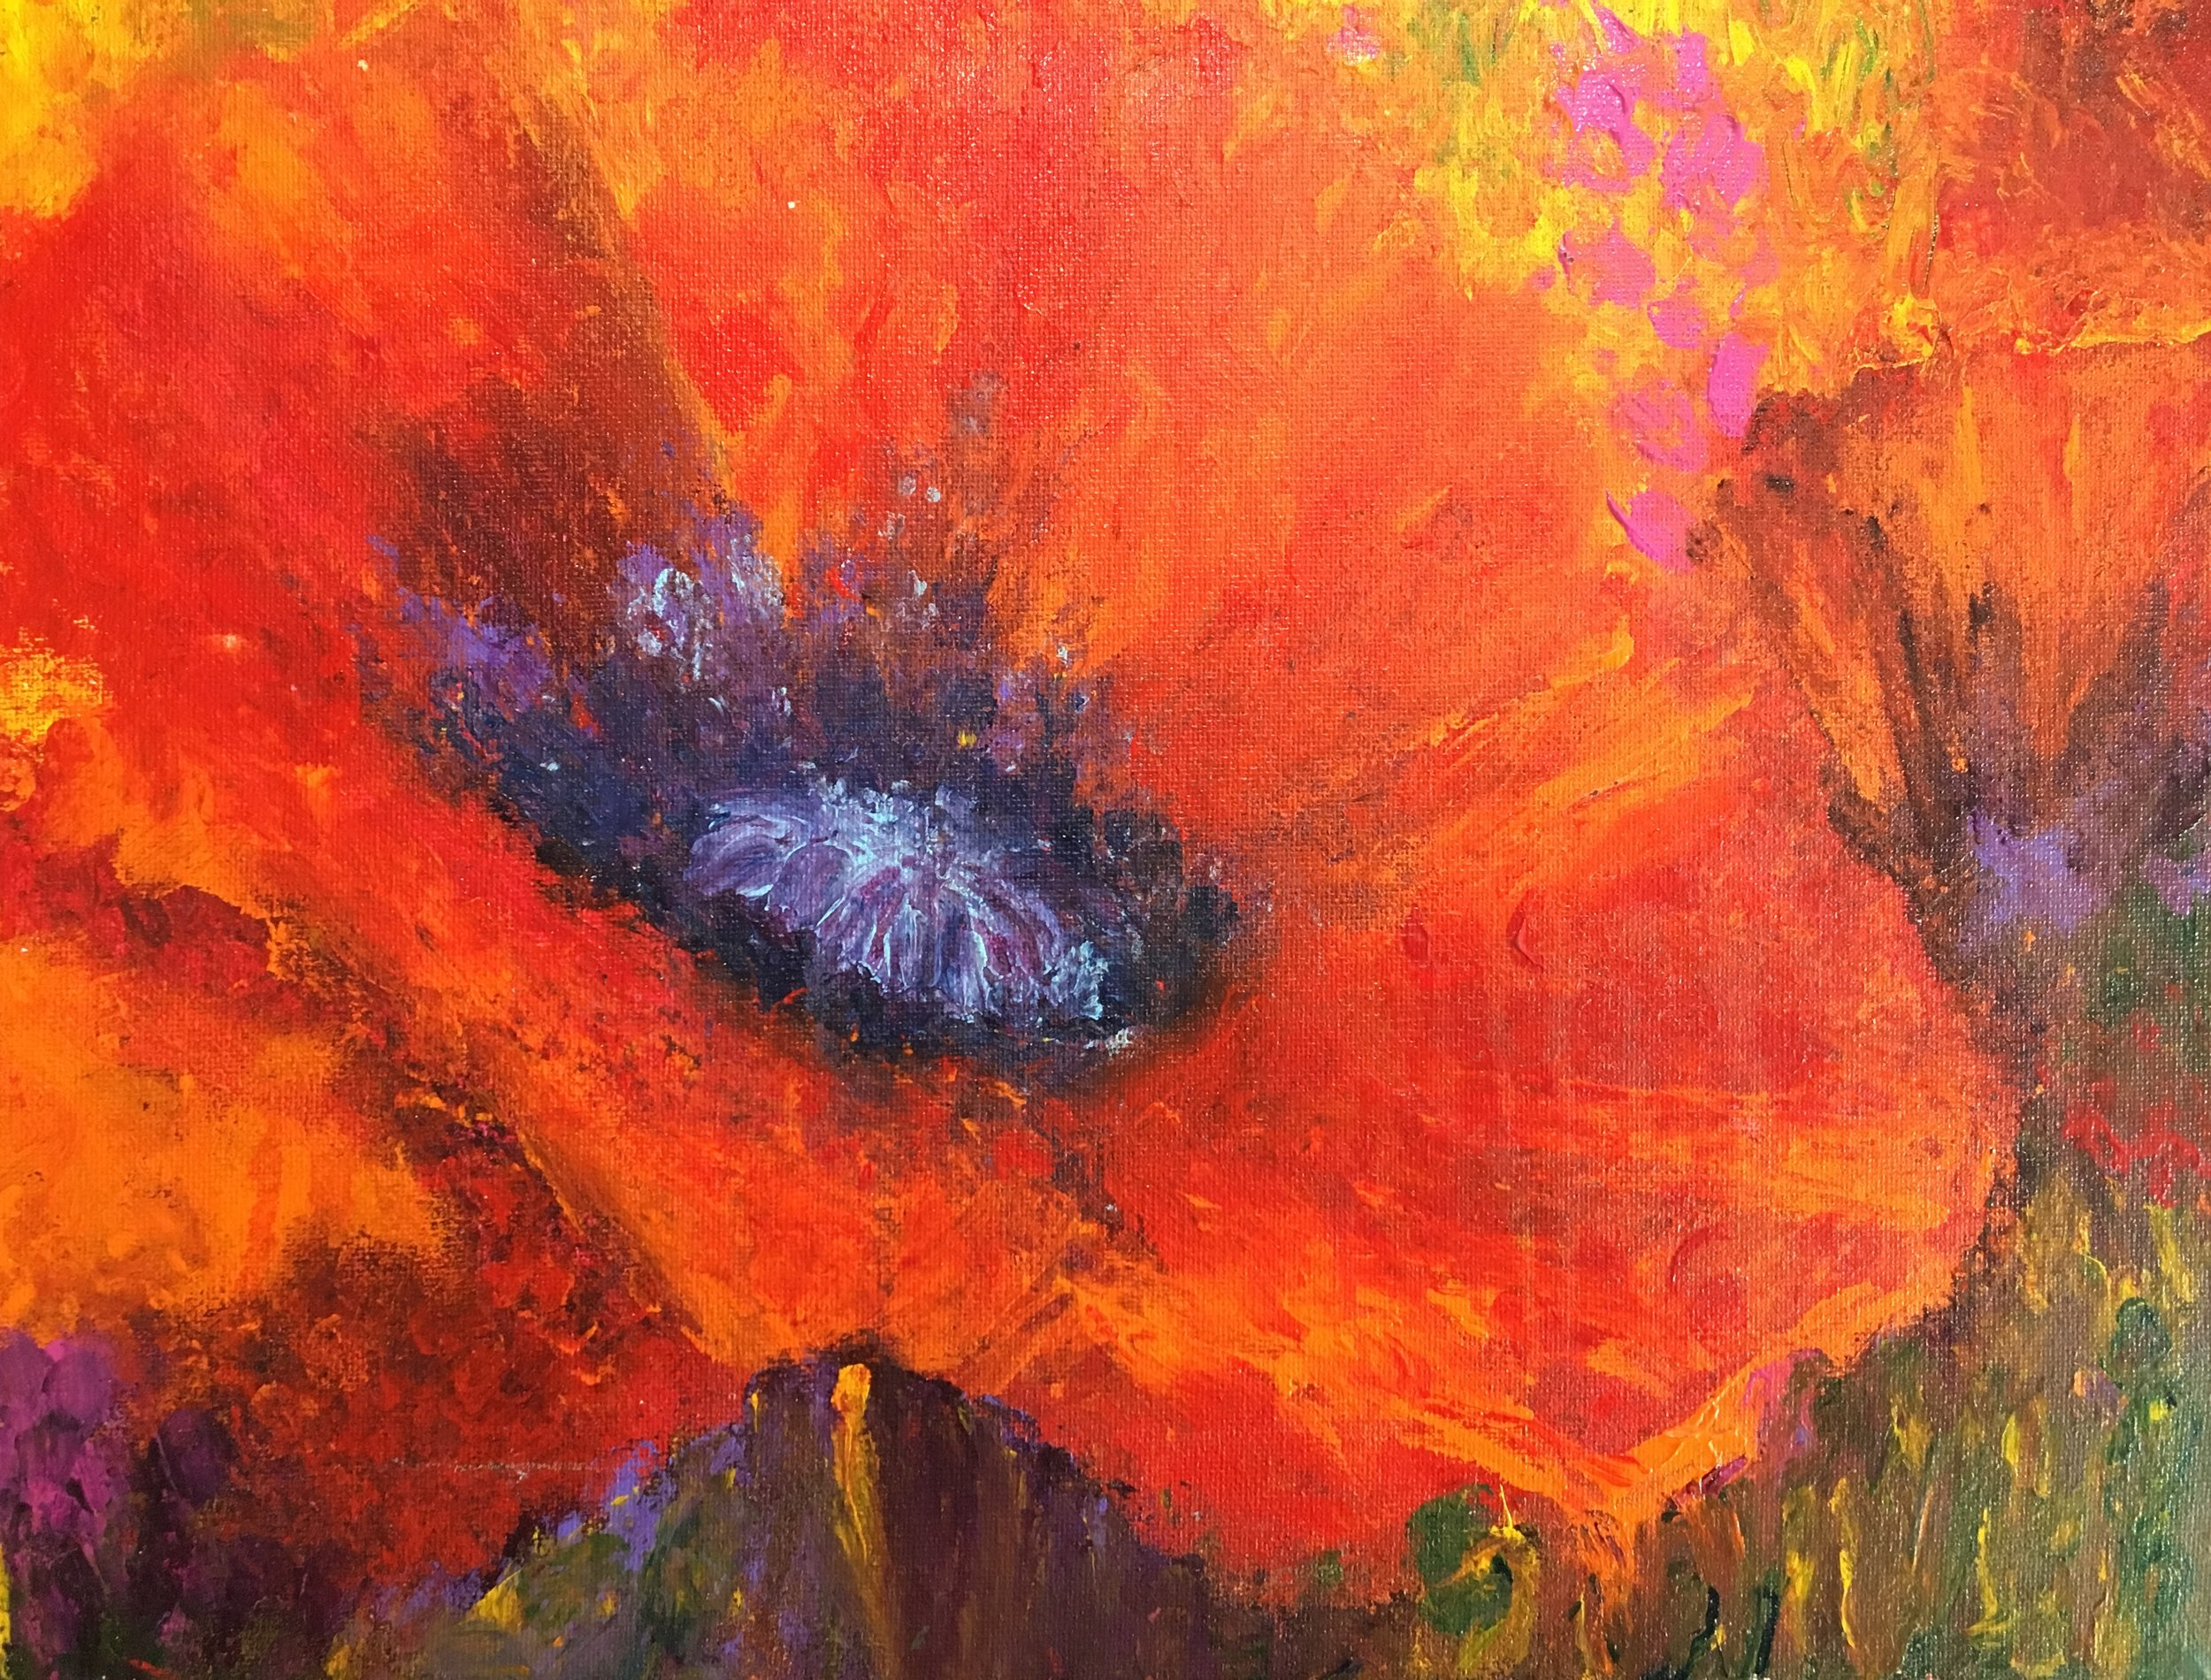 Poppy - Kimberly Adams - Acrylic.jpg